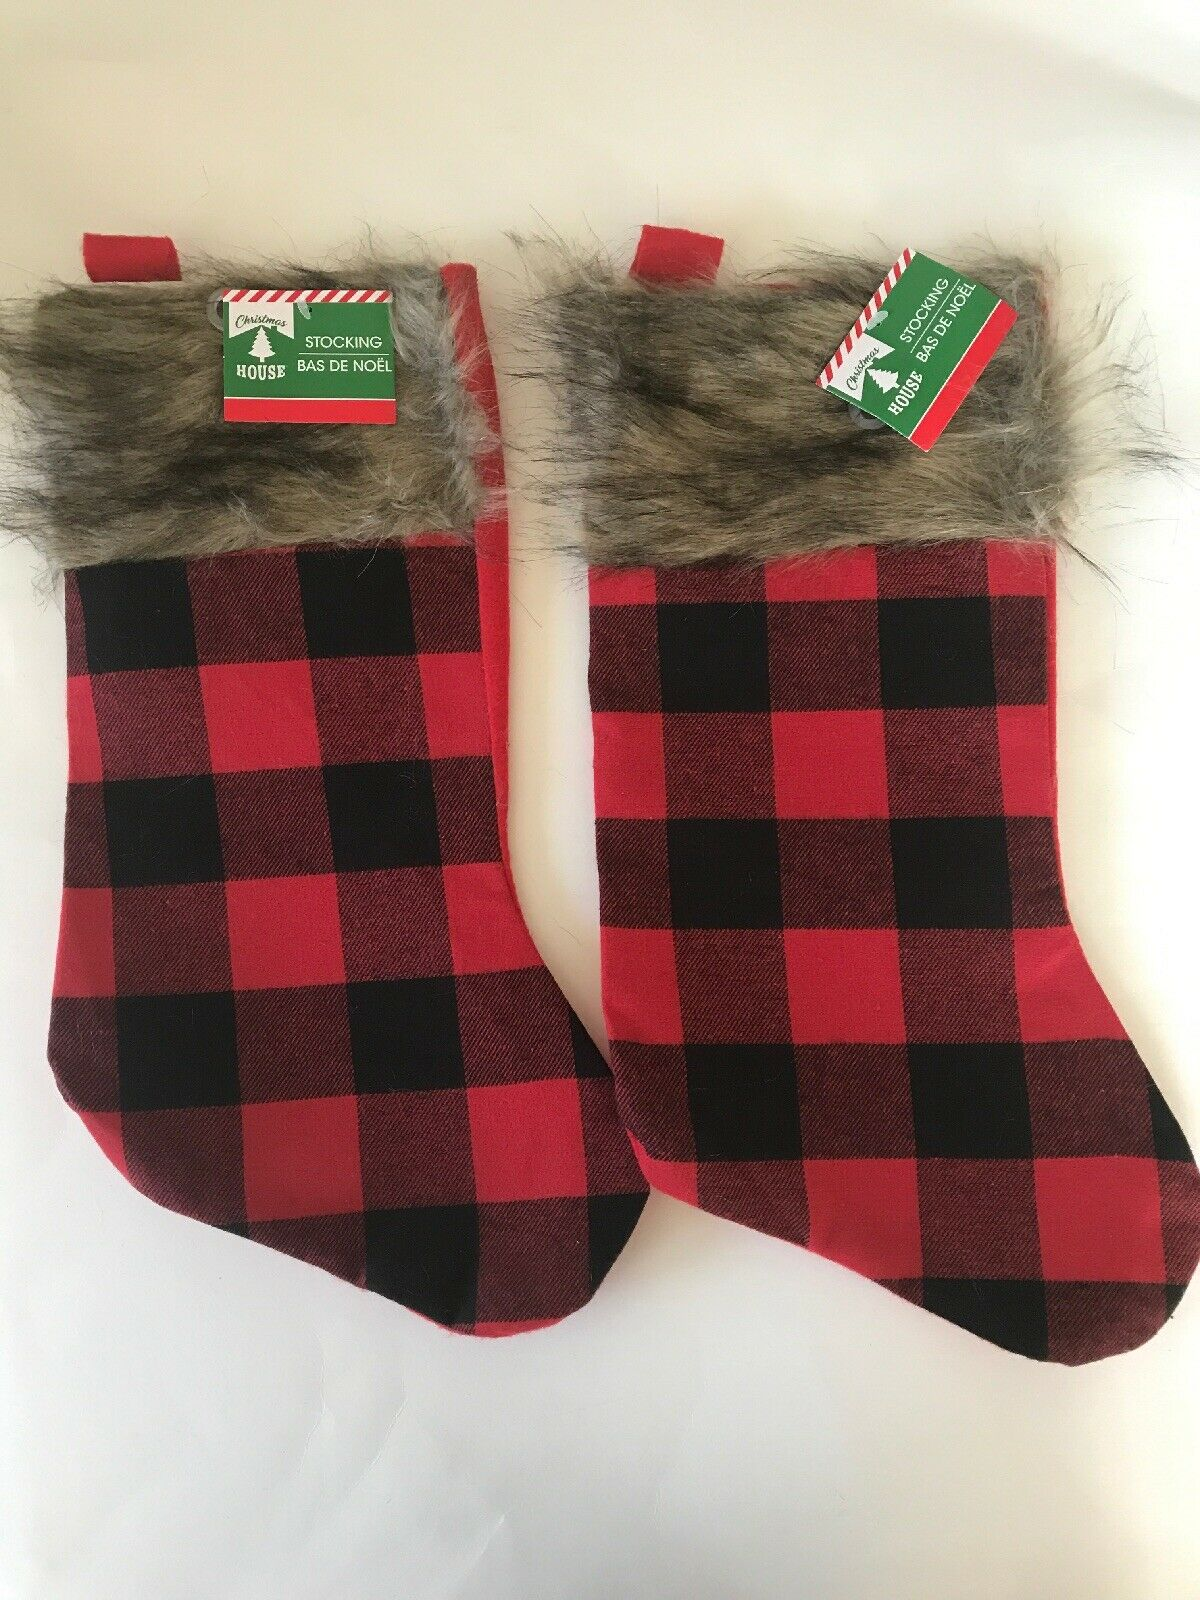 3 Pack 20 Inches Velvet Christmas Stockings Fireplace Hanging Red with White for